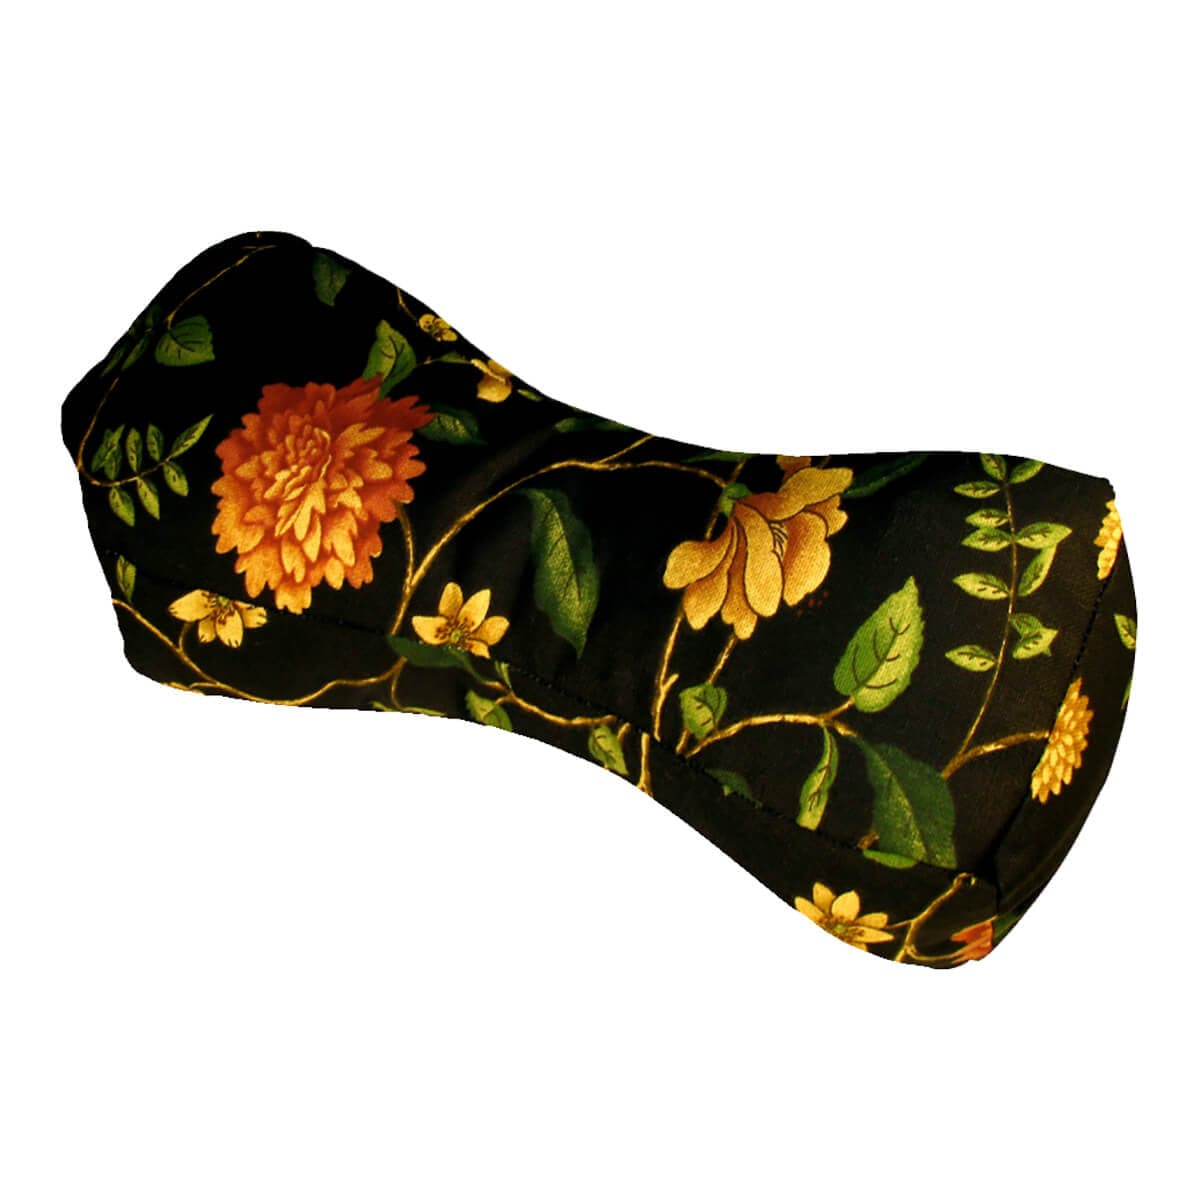 Travel Buddy Neck Support Pillow Nassau Vine Black